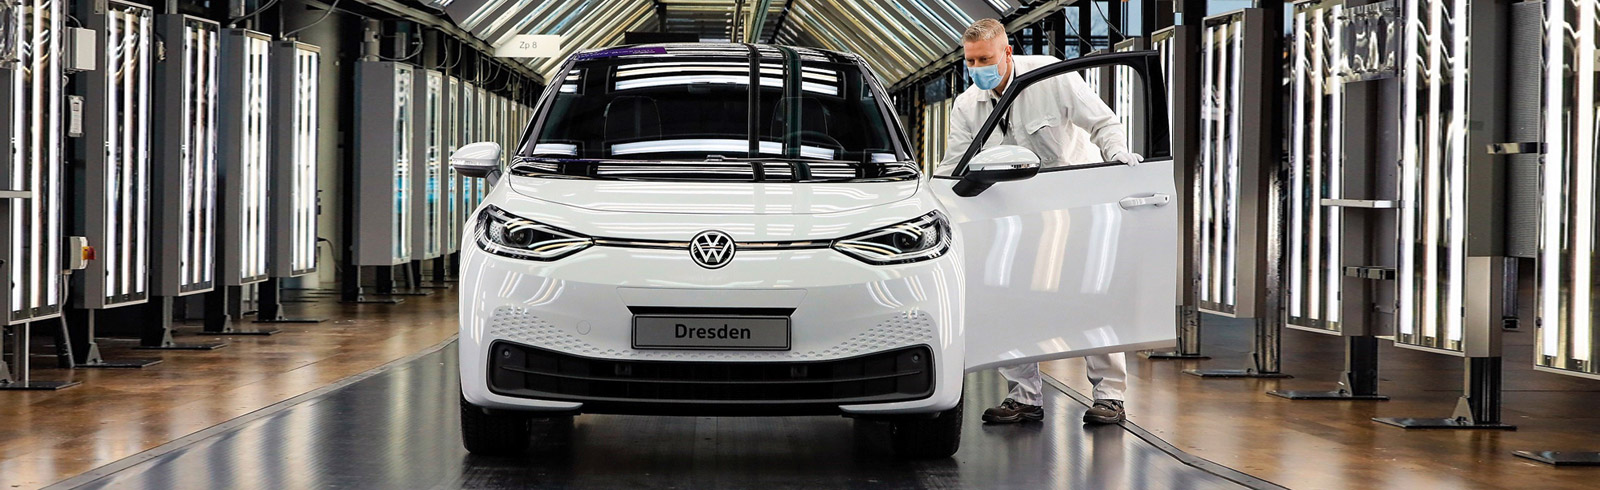 Volkswagen began series production of the ID.3 in Dresden, open a battery recycling facility in Salzgitter